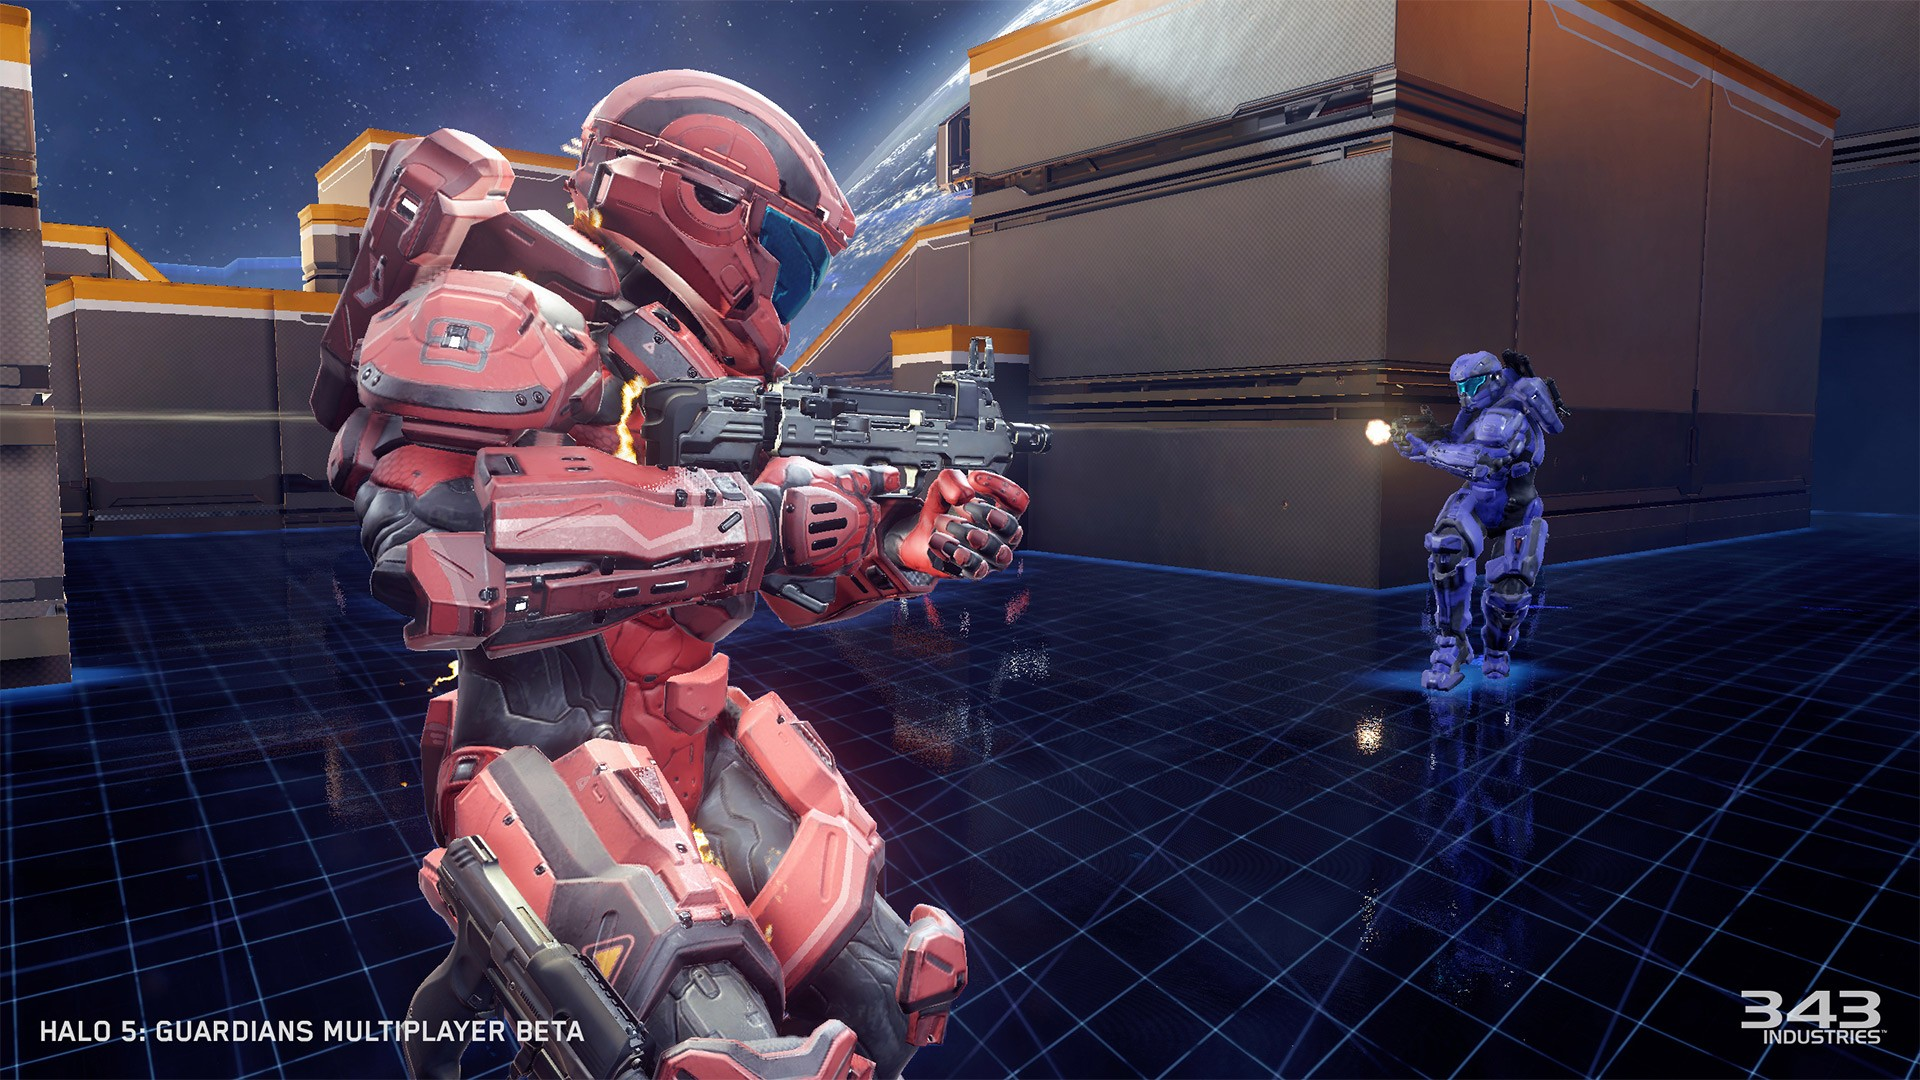 Halo 5: Guardians Multiplayer Beta Gets Updated with New